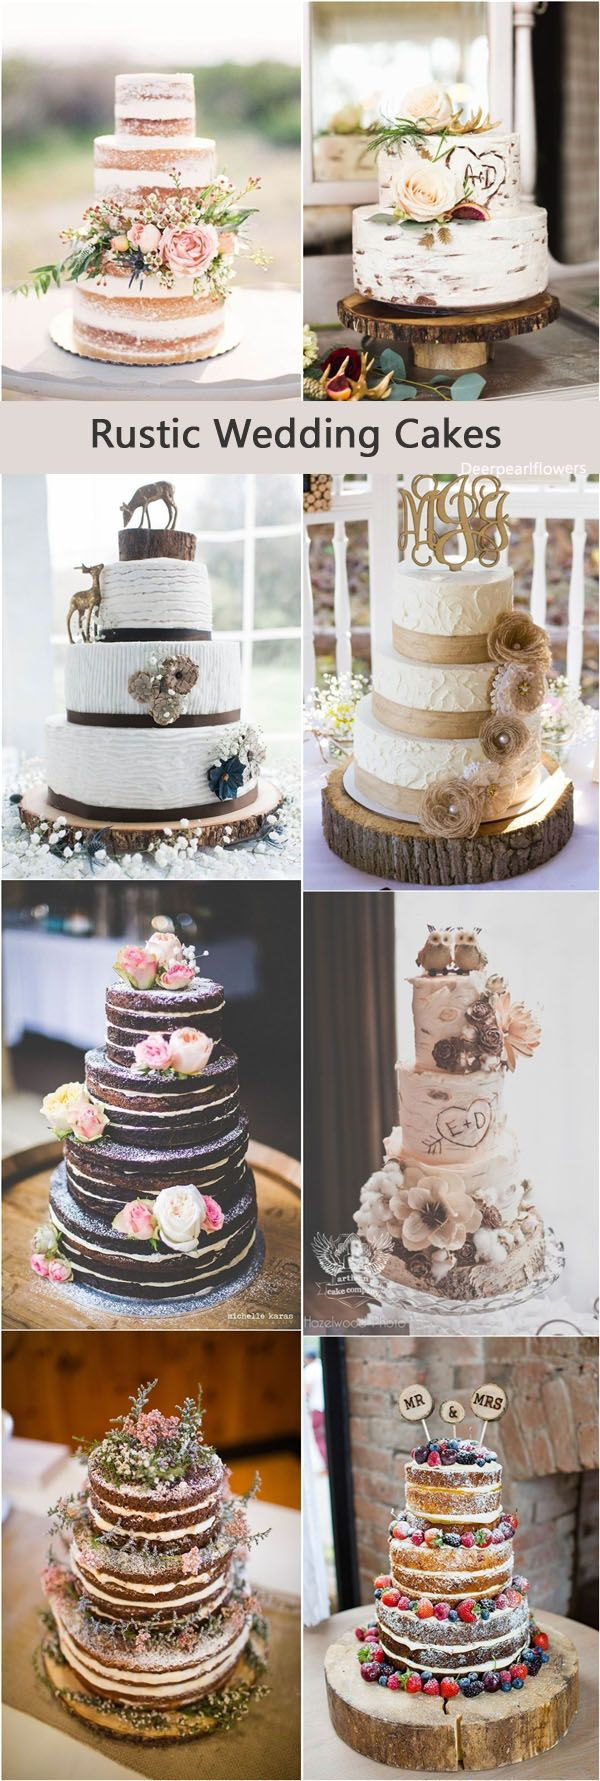 Rustic country wedding cakes / http://www.deerpearlflowers.com/rustic-wedding-details-and-ideas/2/